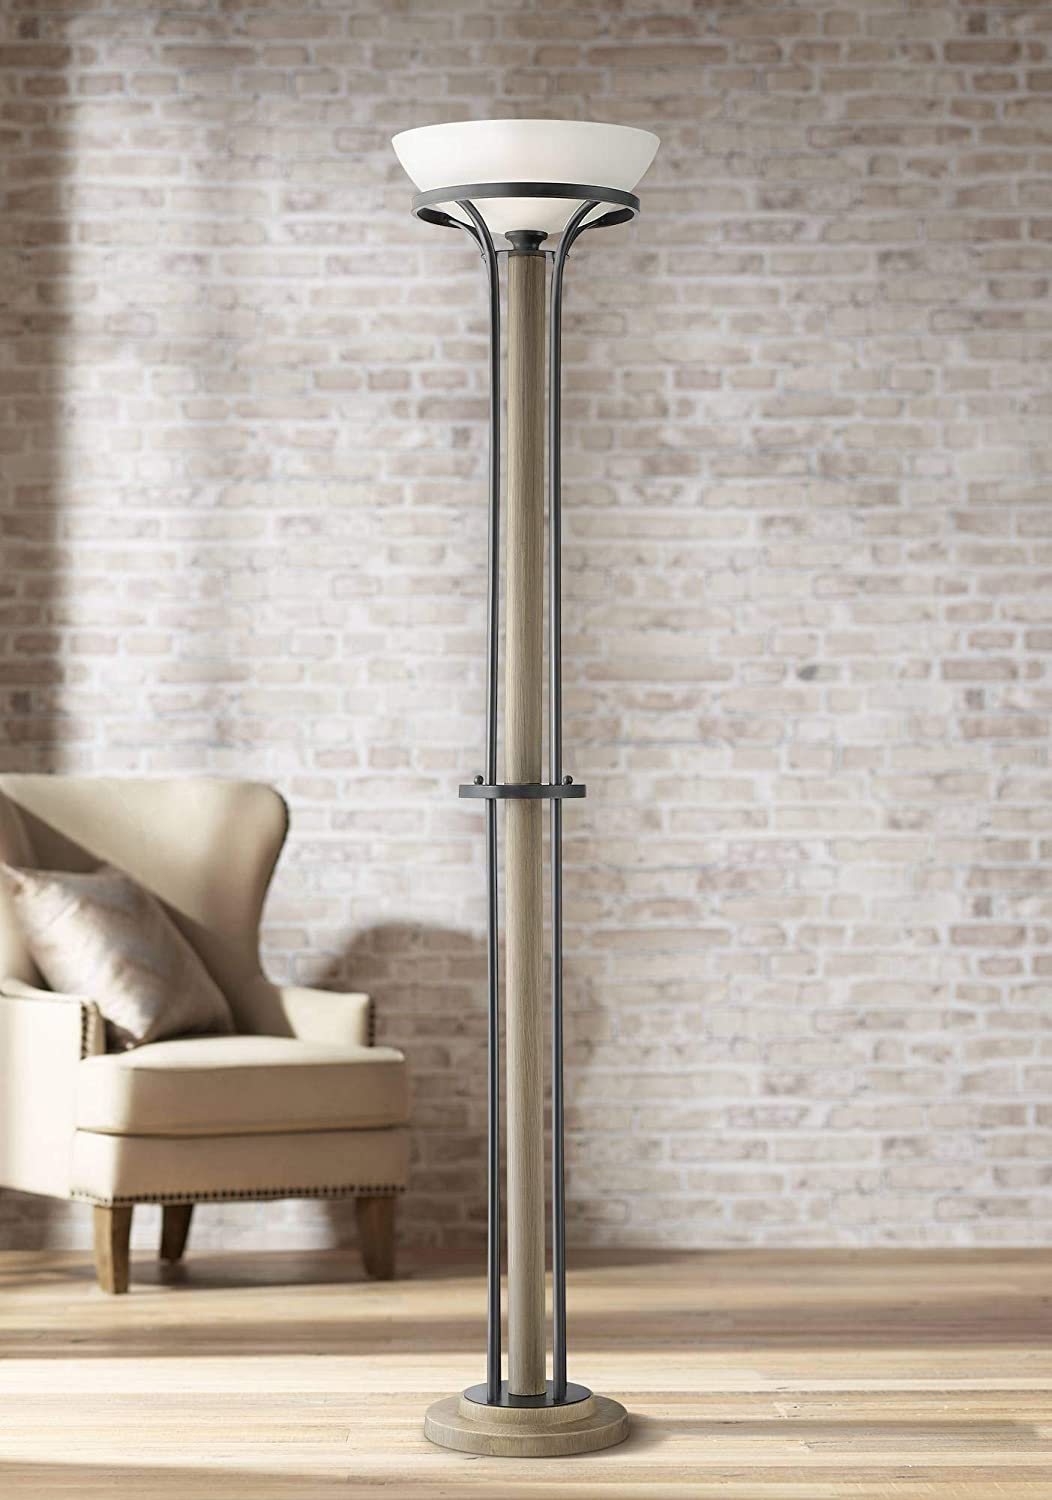 Sentry Rustic Farmhouse Torchiere Floor Lamp Wood Dark Textured Gray White Glass Shade for Living Room Reading Bedroom Office Uplight - Franklin Iron Works